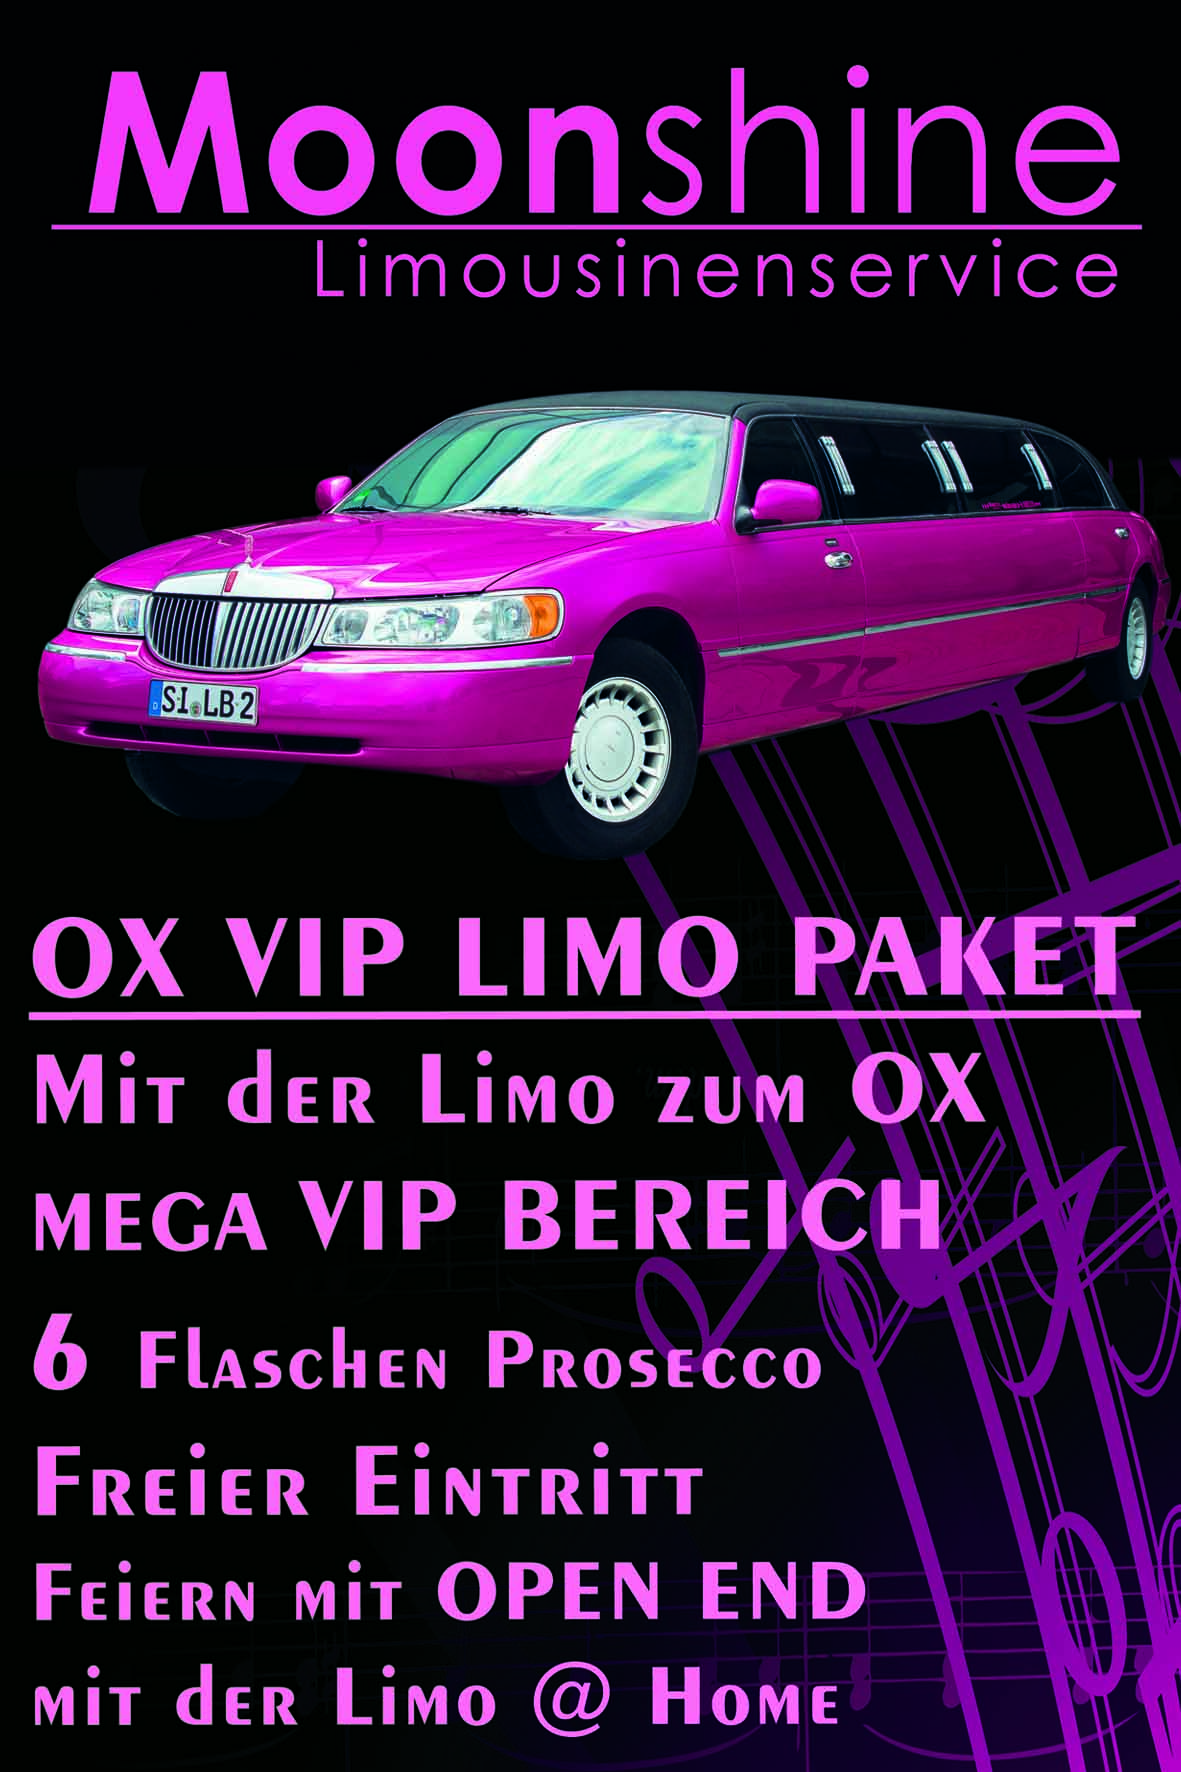 vip paket in siegen gewinnspiel mit der stretchlimousine zum ox mit vip paket. Black Bedroom Furniture Sets. Home Design Ideas